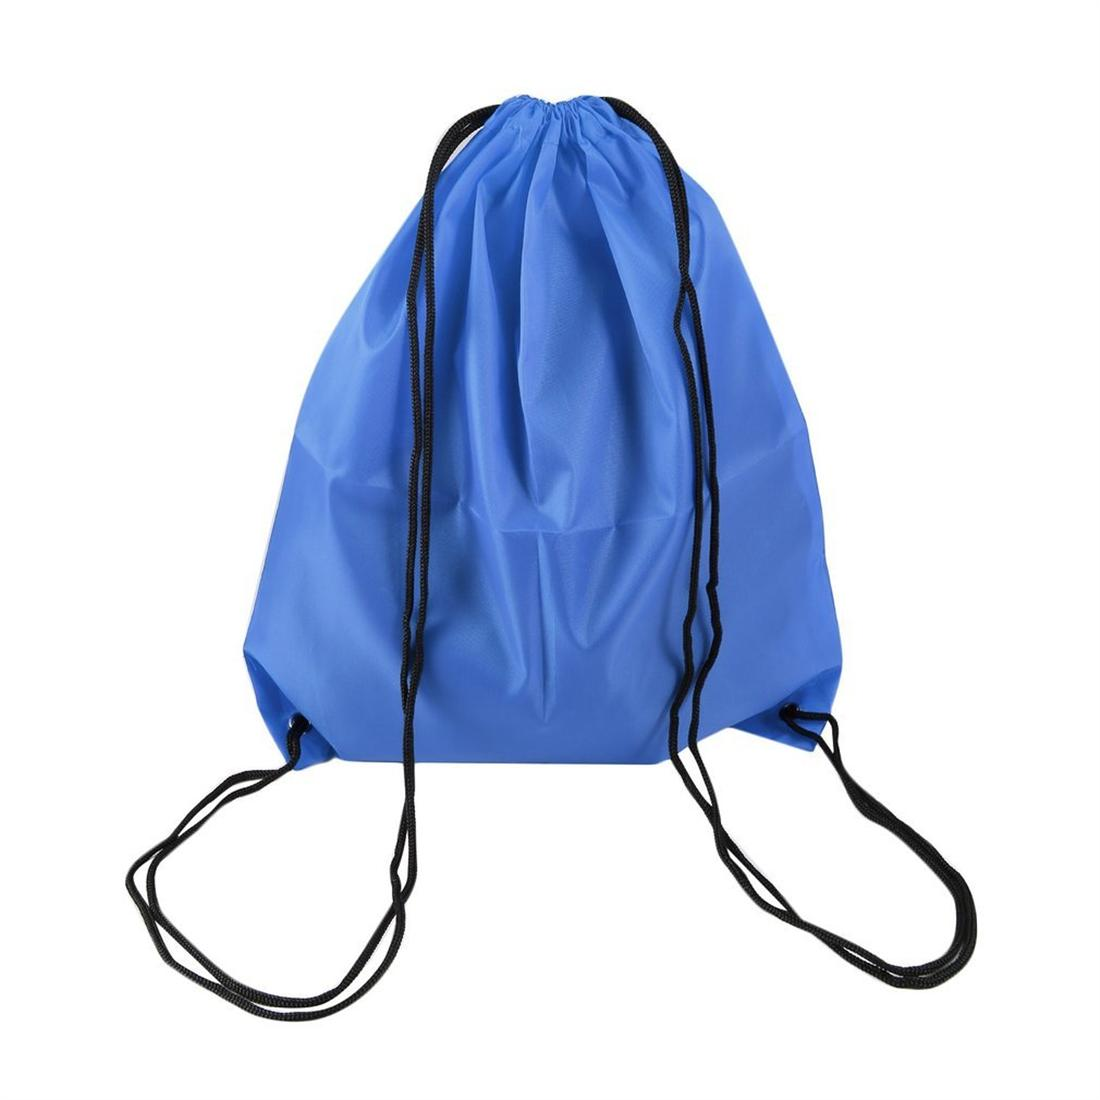 Swimming Drawstring Beach Bag Sport Gym Waterproof Backpack Swim Dance